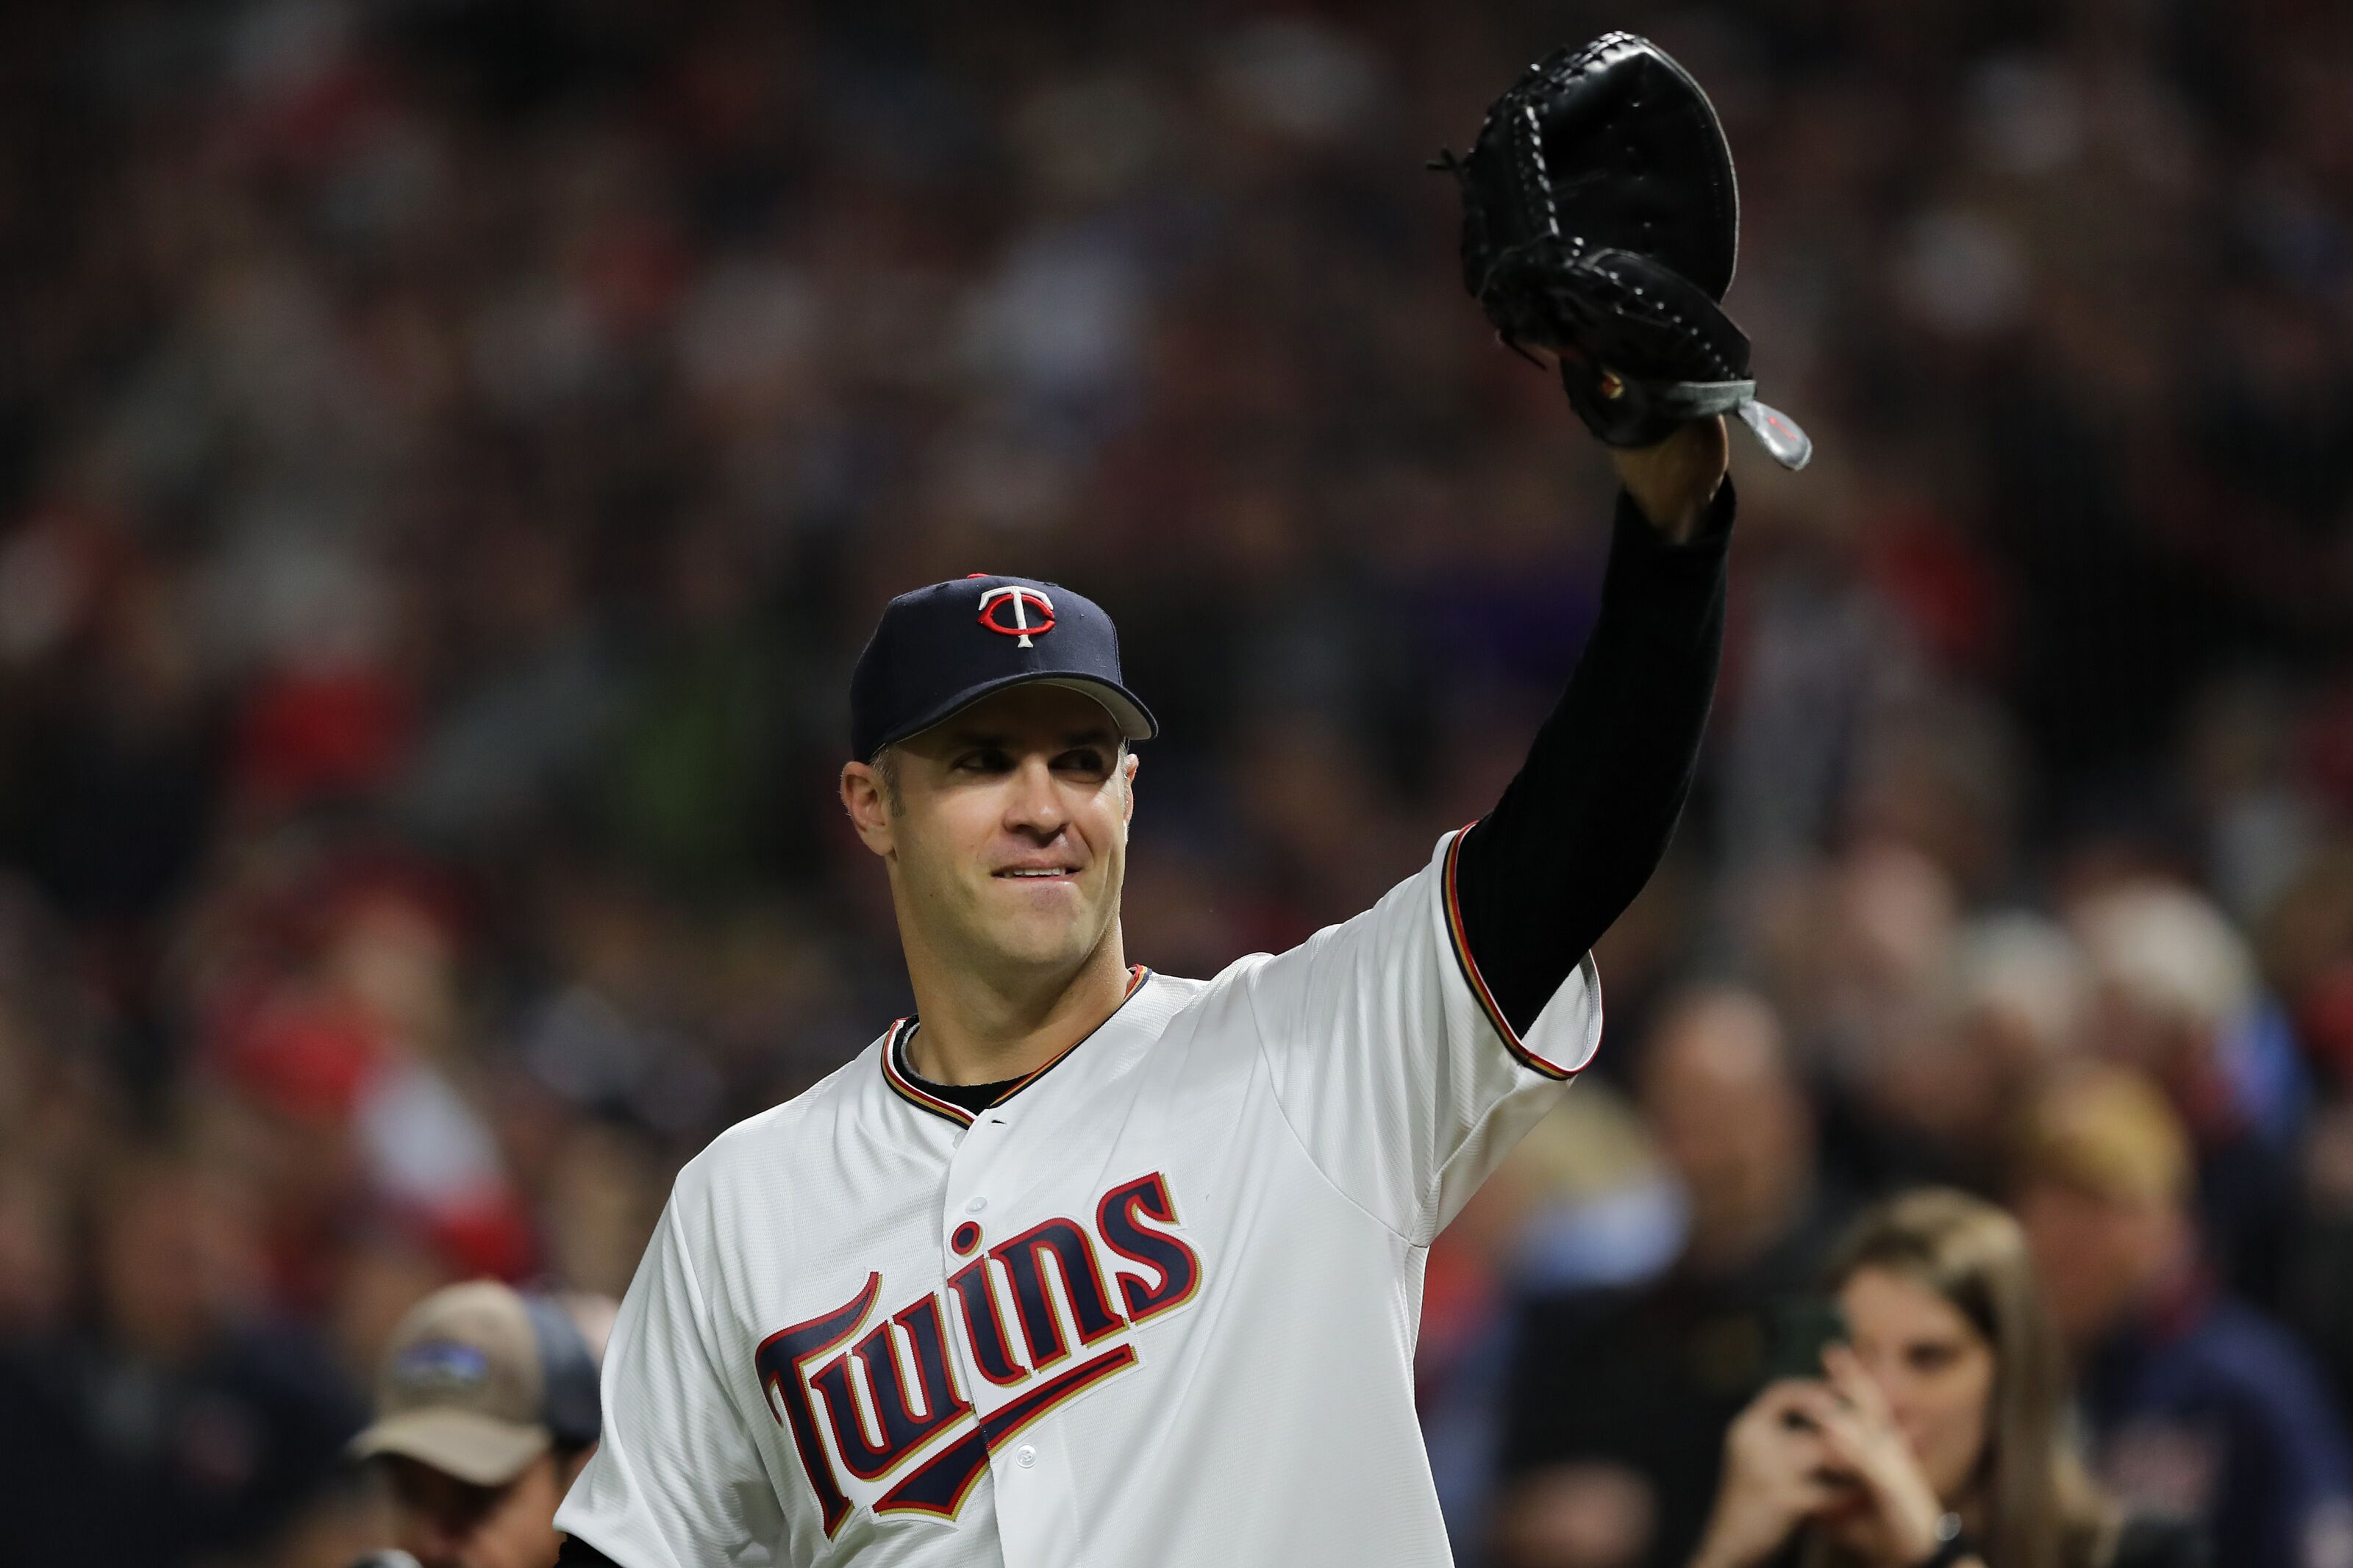 Report: Minnesota Twins planning 'Legends Game' in August